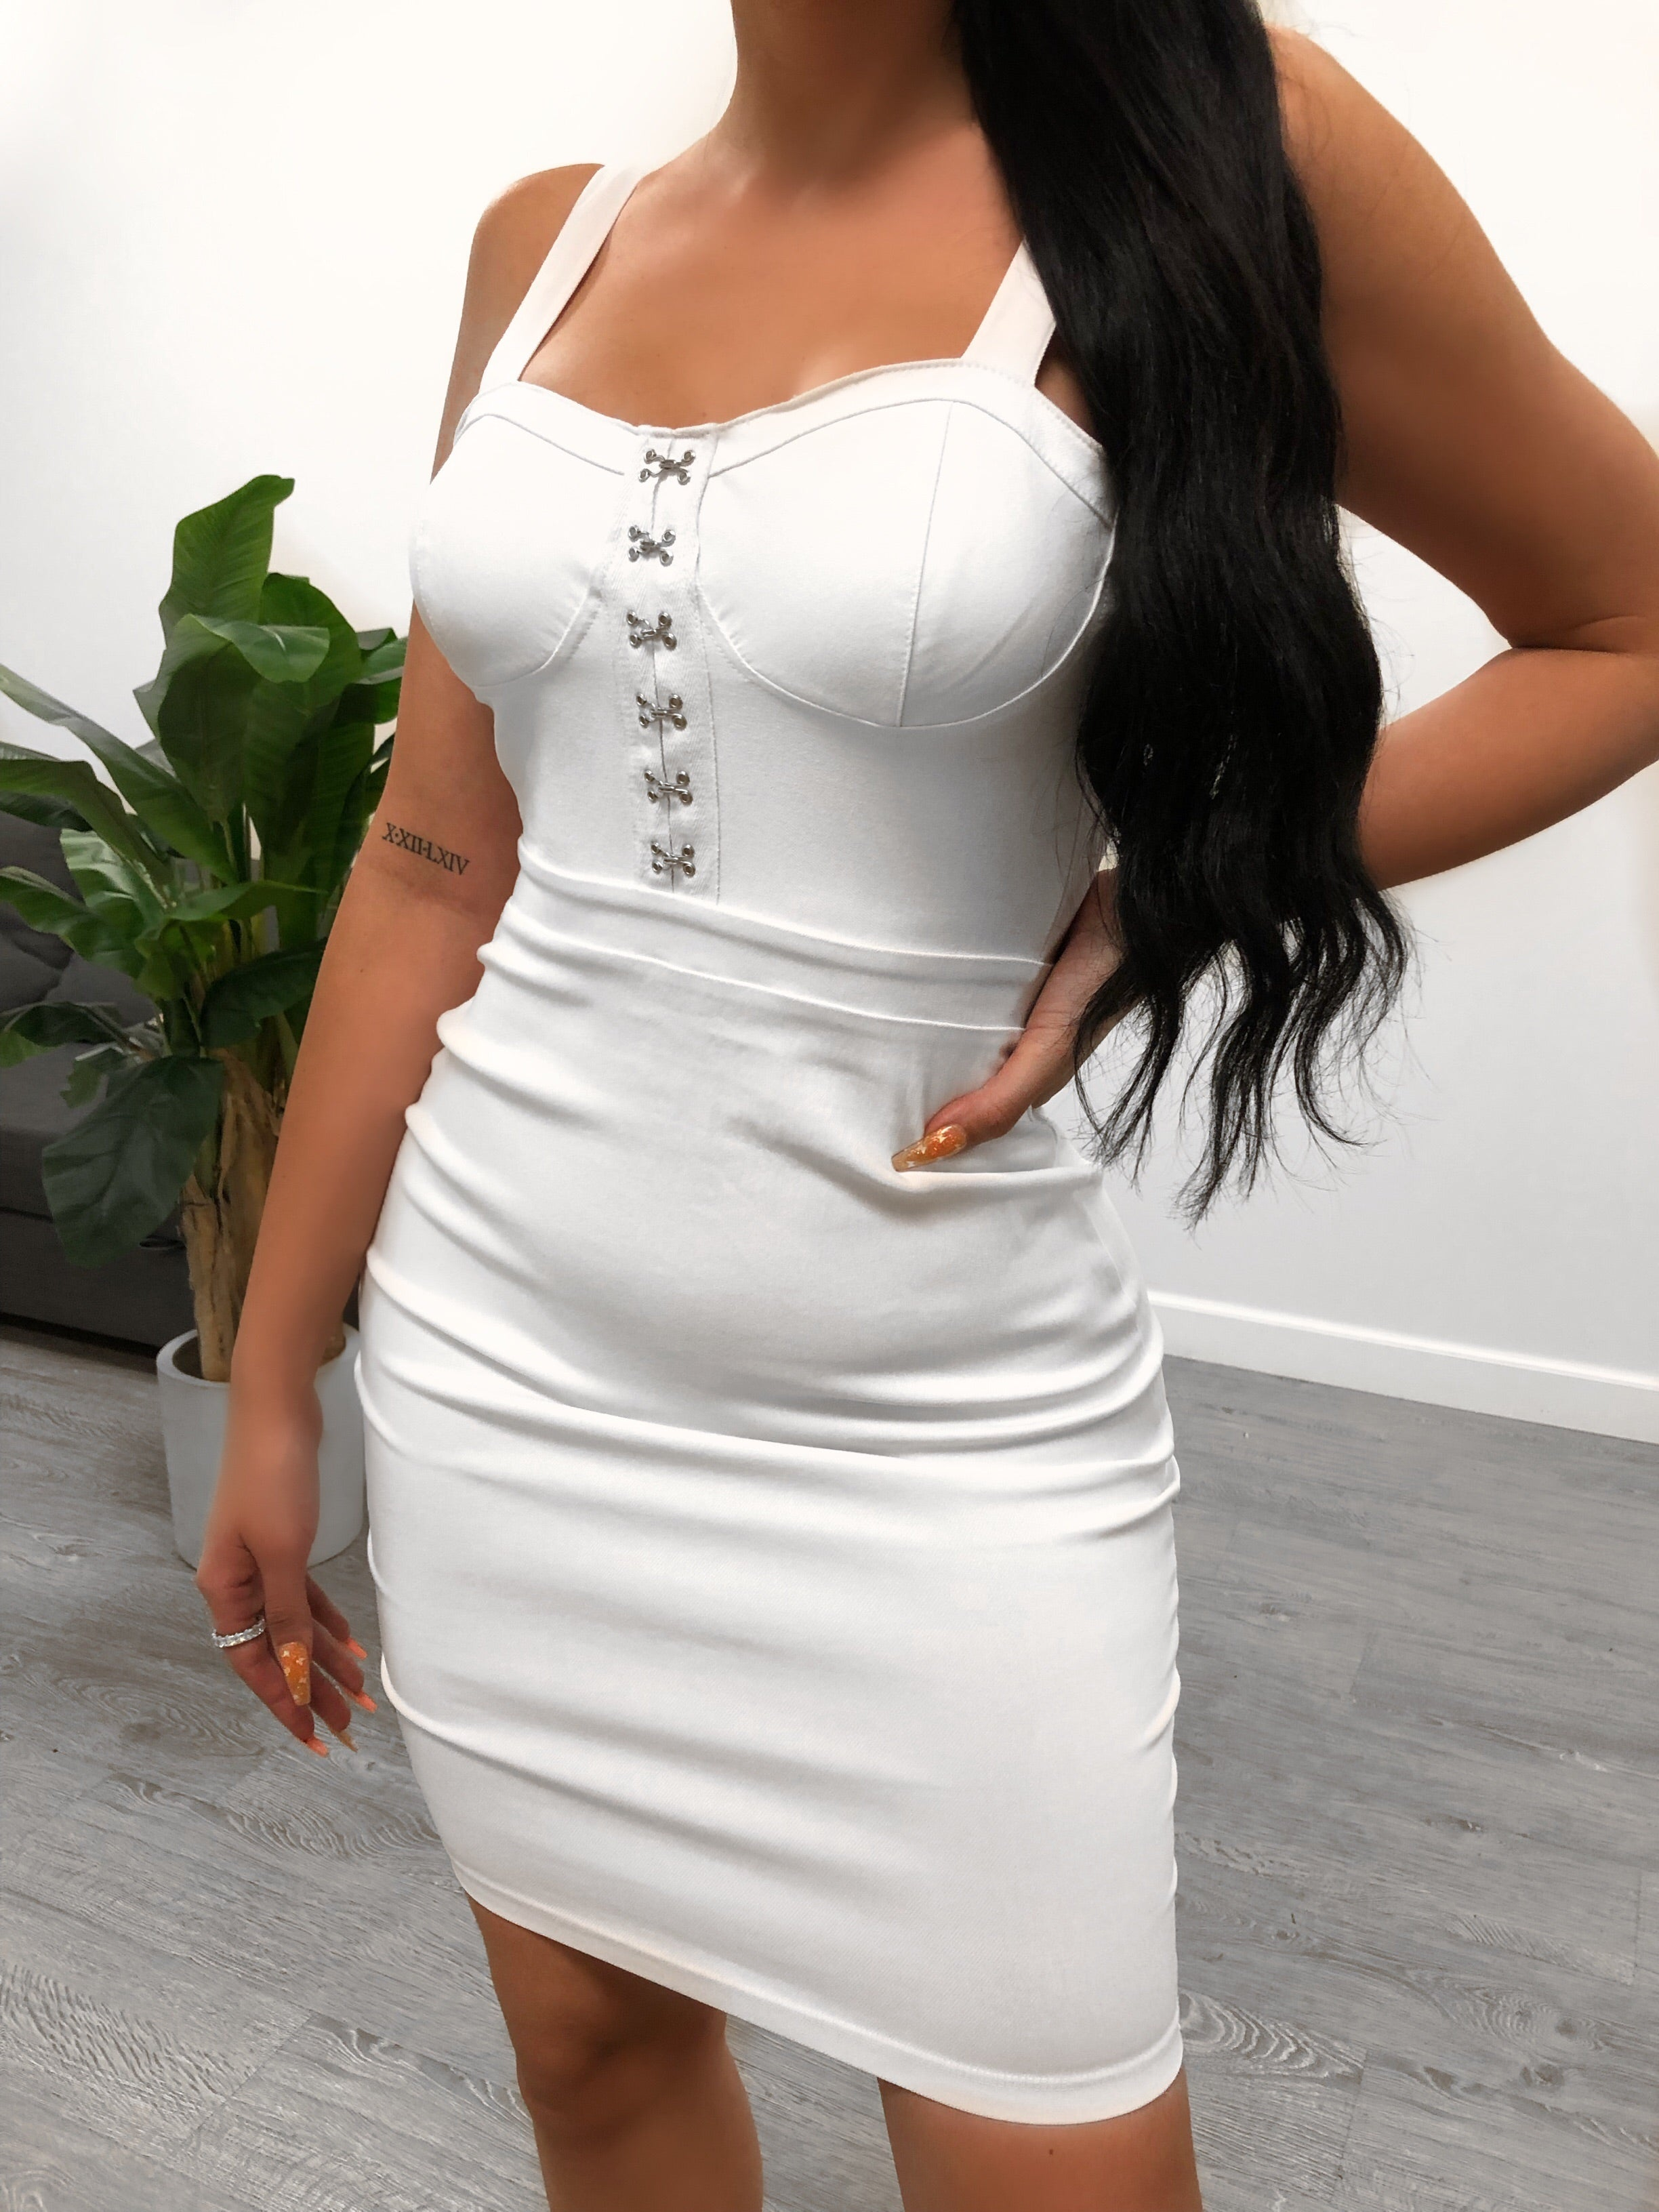 white night out dress. wide non adjustable straps. mid thigh/above the knee length. silver buckles on chest area for design..